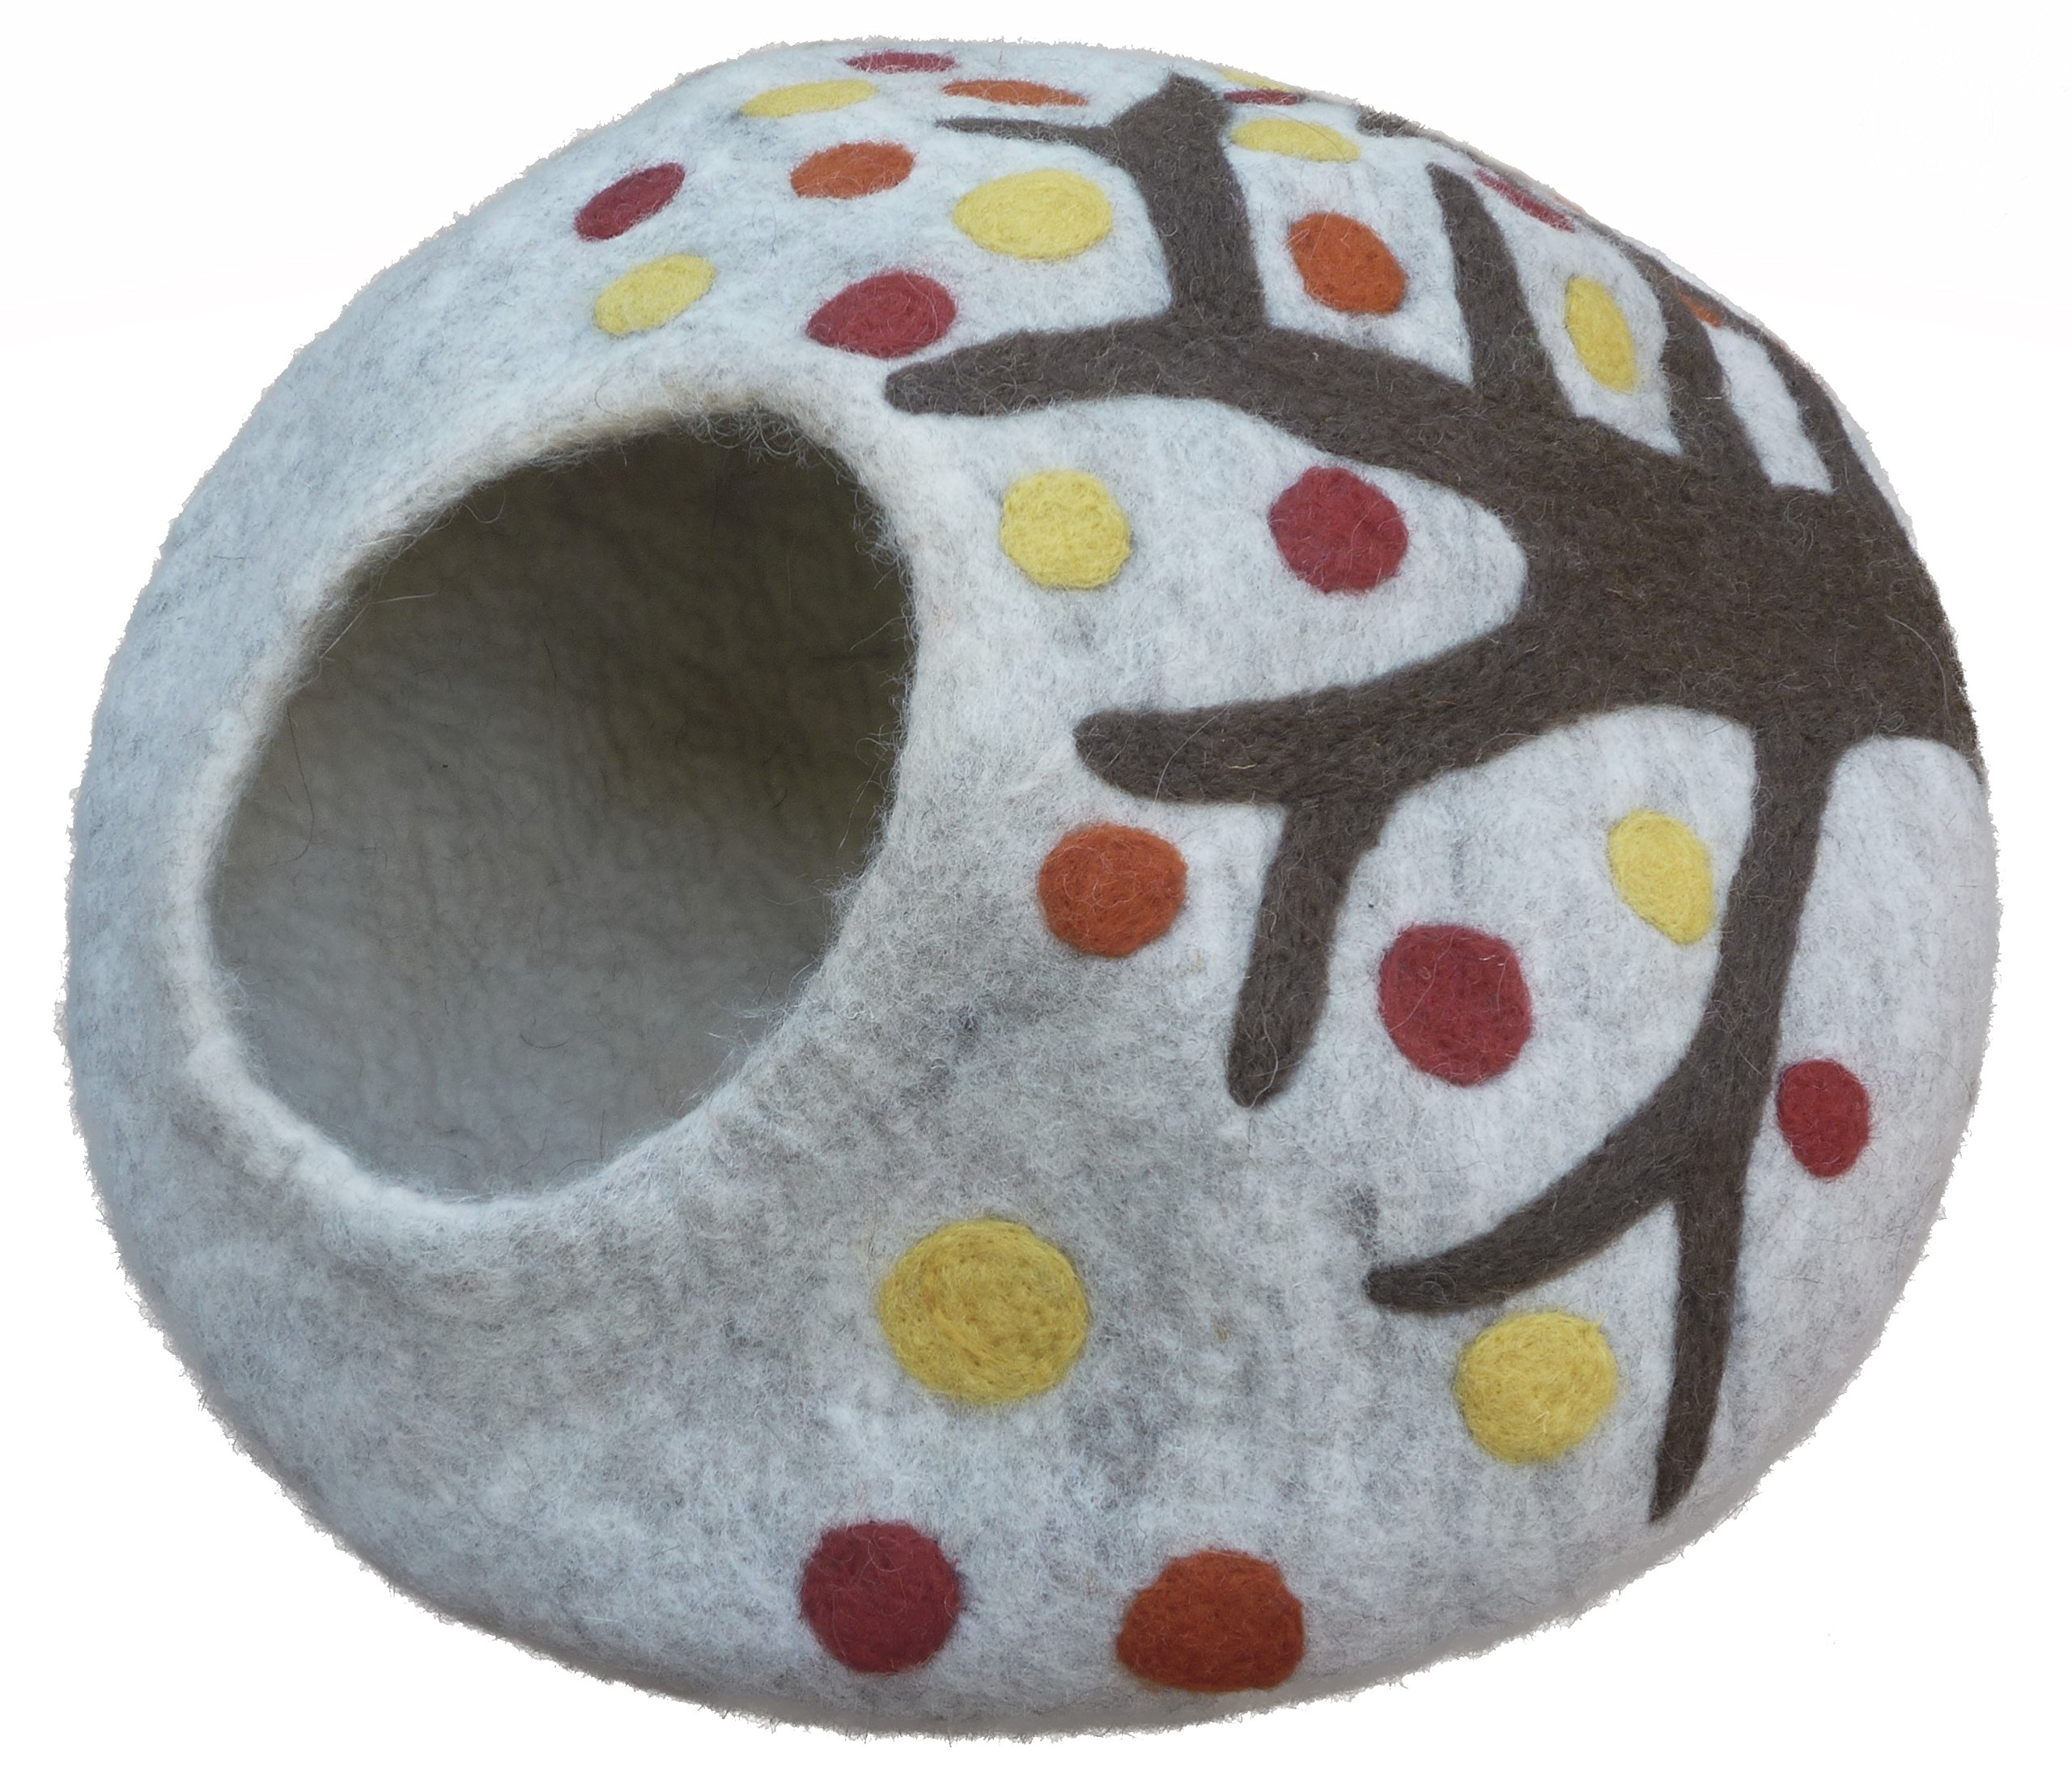 Earthtone Solutions Cat Cave Bed, Unique Handmade Felted Merino Wool, Large Covered and Cozy, Also Perfect for Kittens, Includes Bonus Catnip, Original Cat Caves, (Enchanted Forest) by Earthtone Solutions